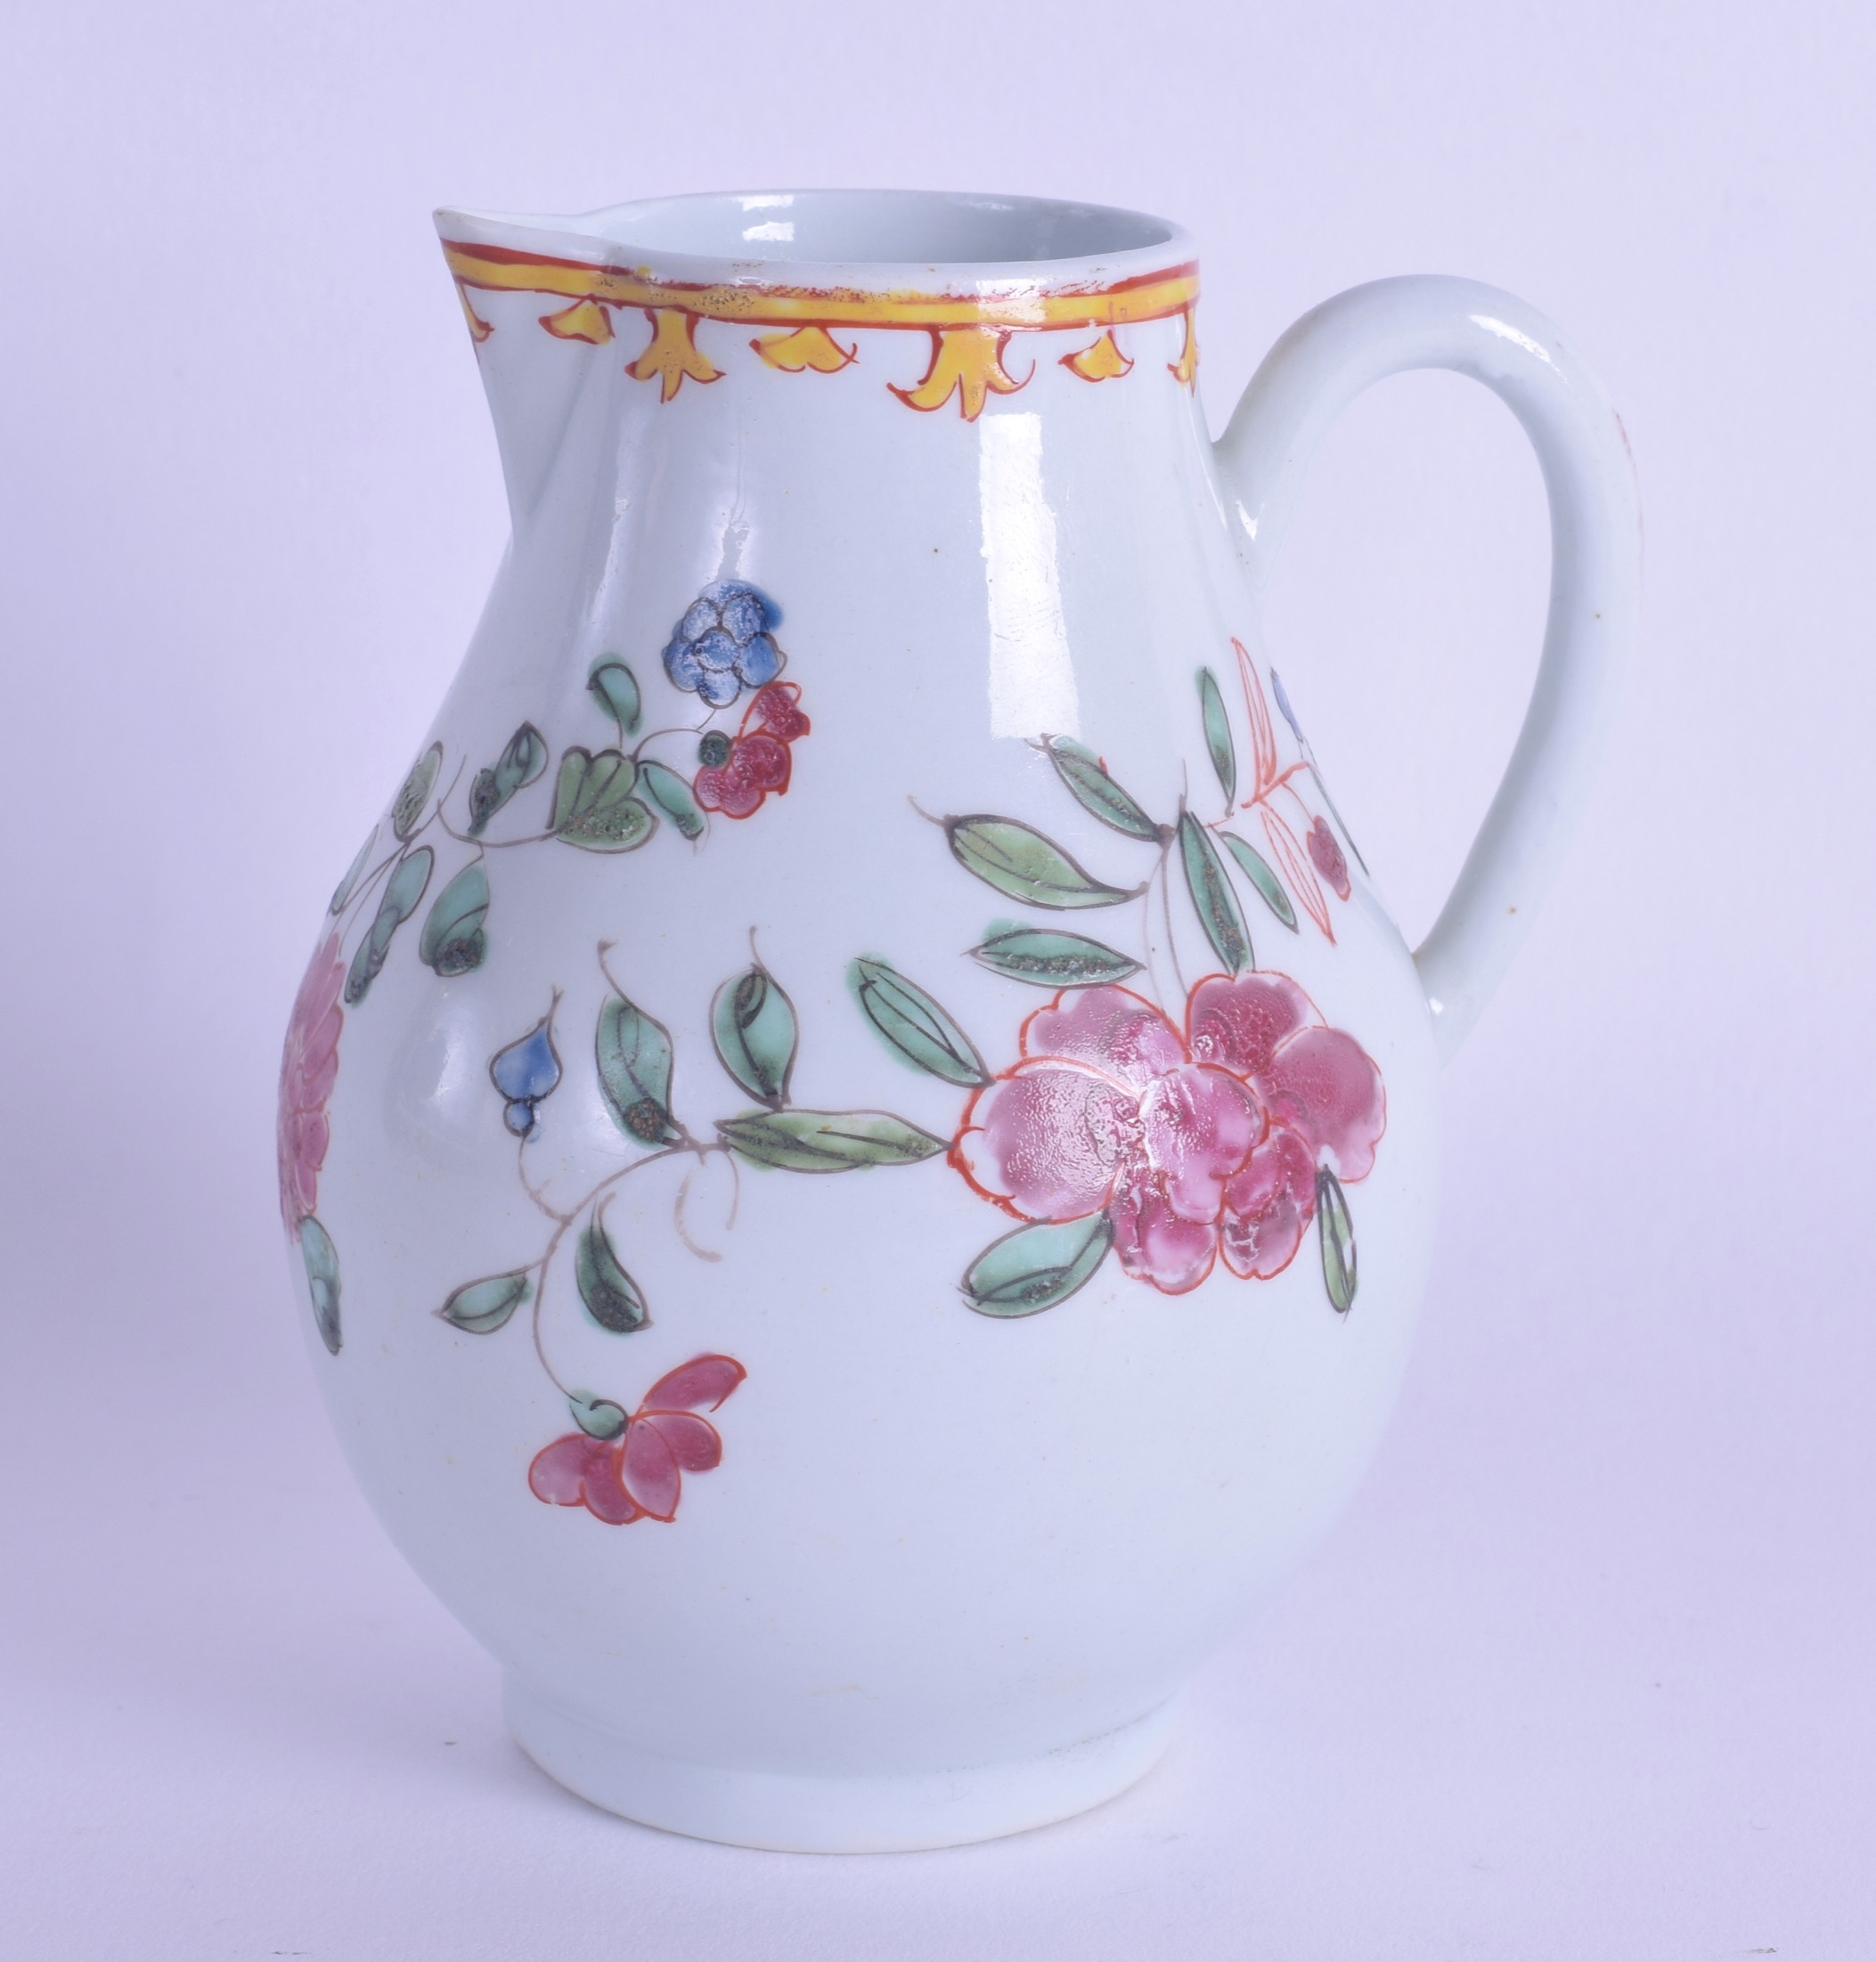 Lot 120 - An 18th c. Liverpool sparrow beak jug painted in famille rose style under a bright yellow border.